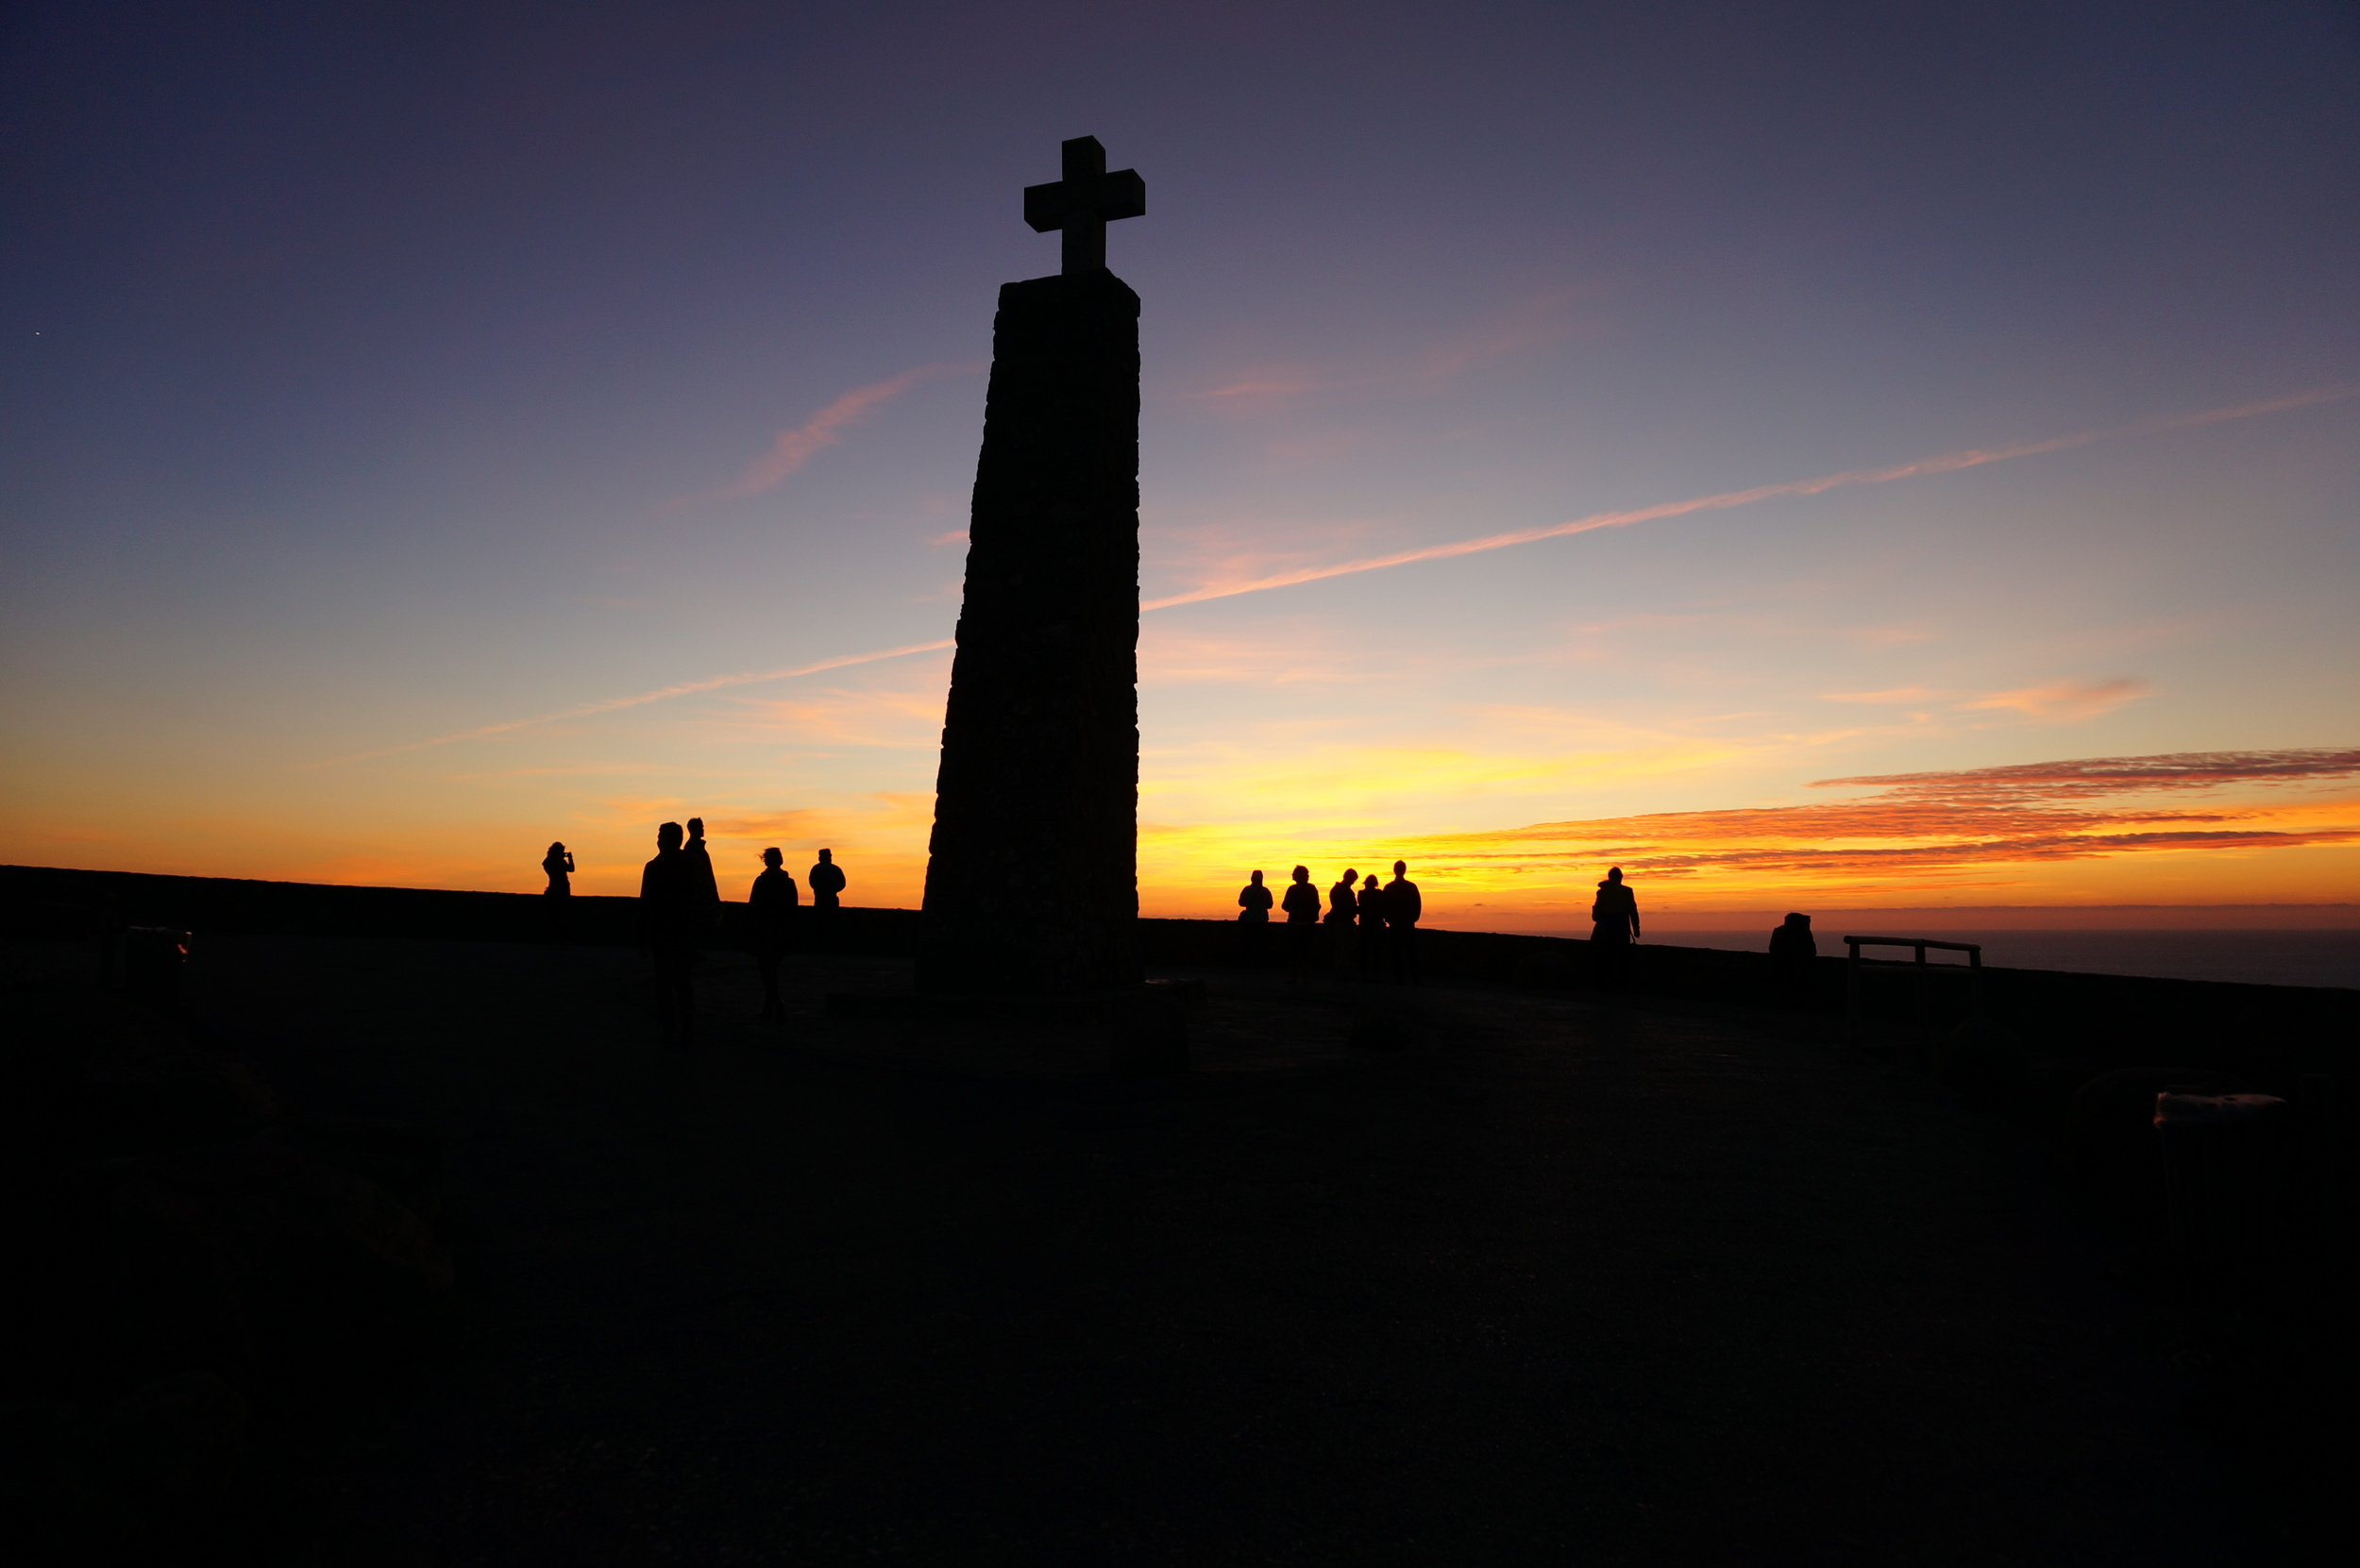 Praia da Ursa is a short walk from Cabo da Roca which is Europe's most Westerly point.